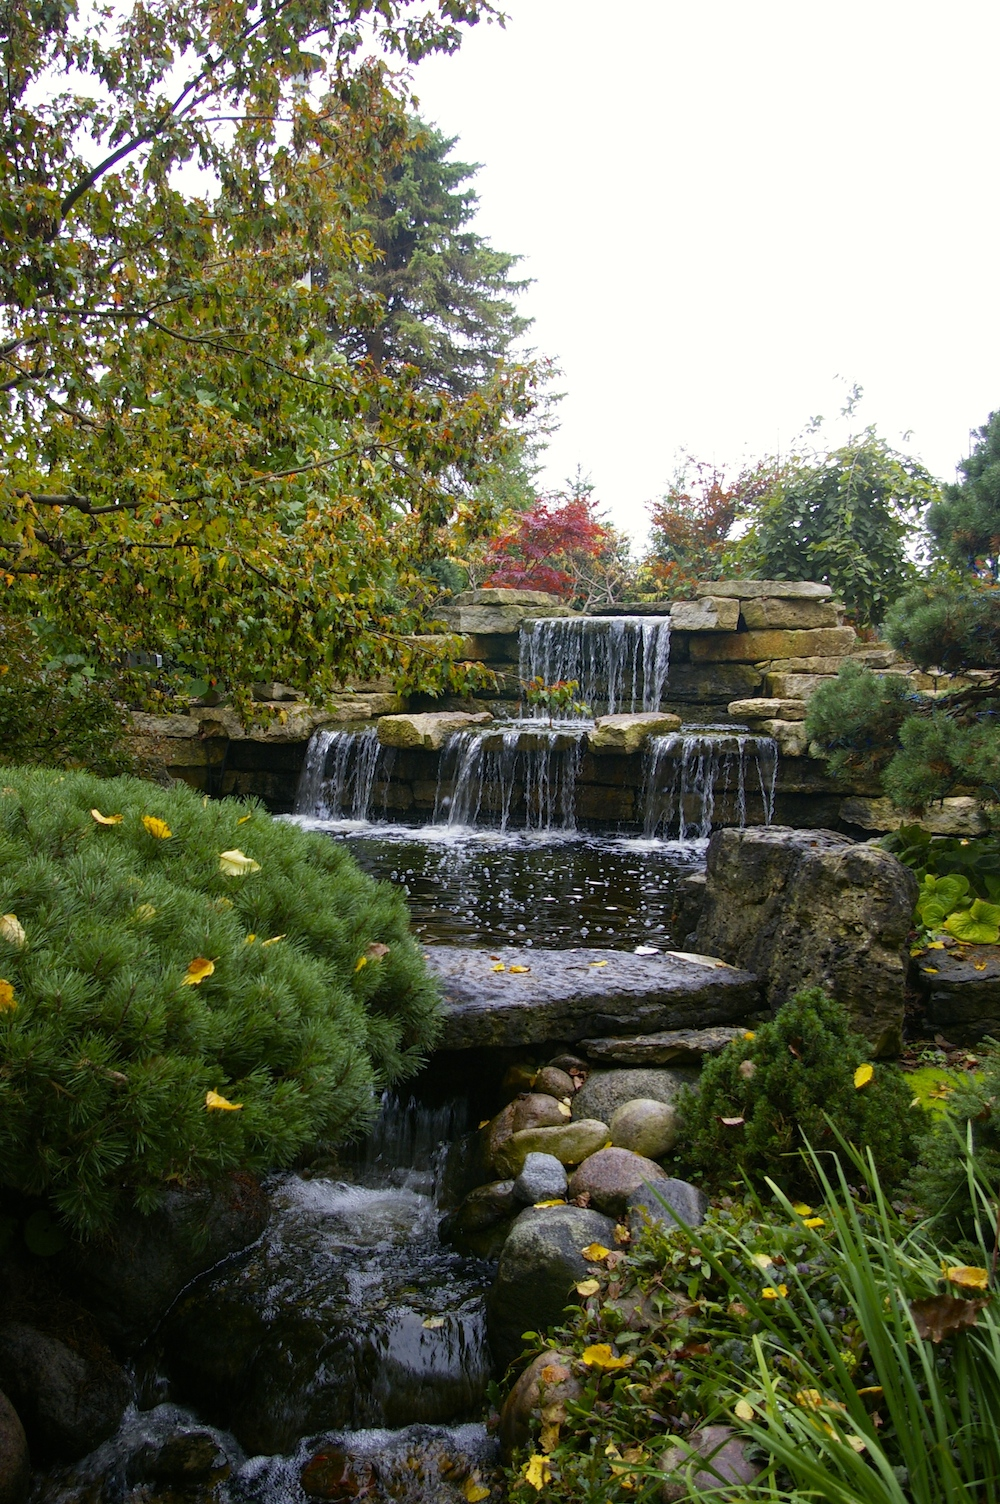 Waterfall against fall foliage at the Rotary Botanical Garden in Janesville, Wisconsin